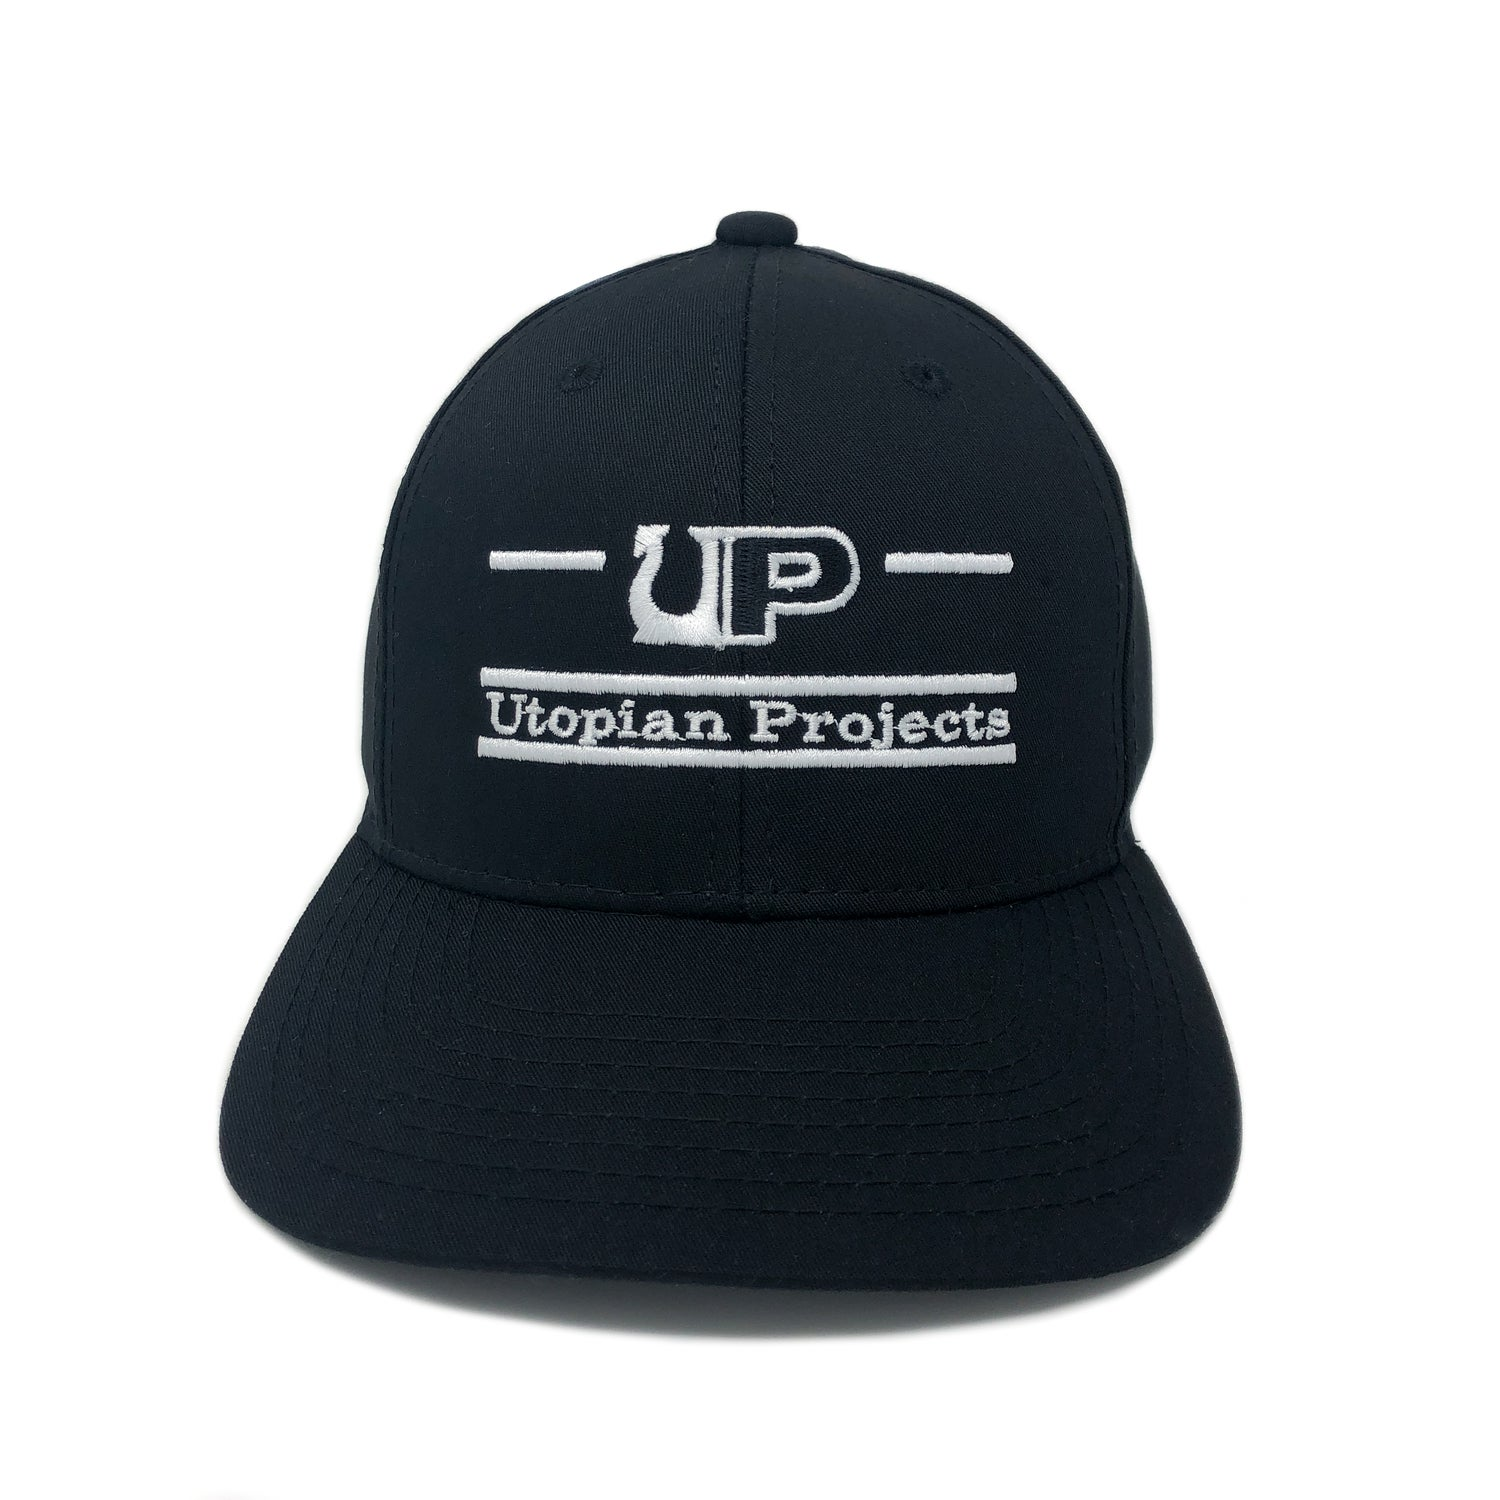 Image of UP / THE GAME HAT - UTOPIAN PROJECTS - Black/White